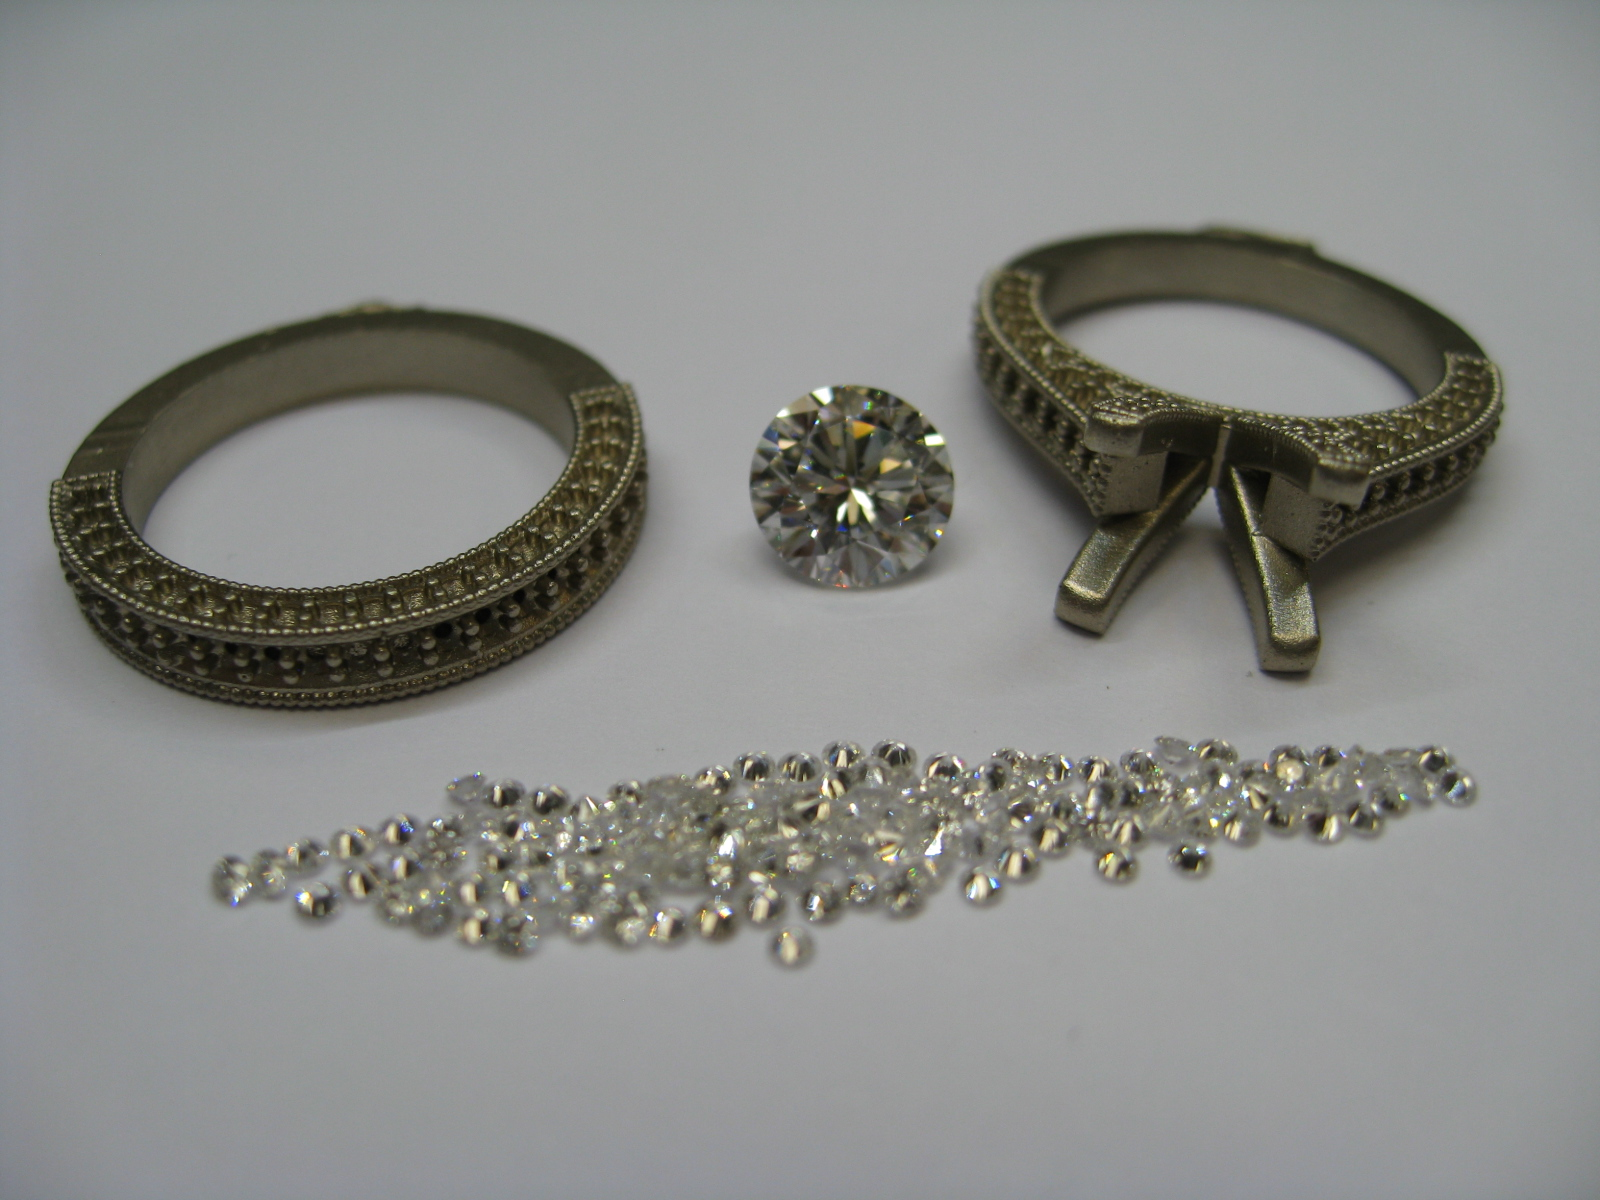 The rough ring and diamonds